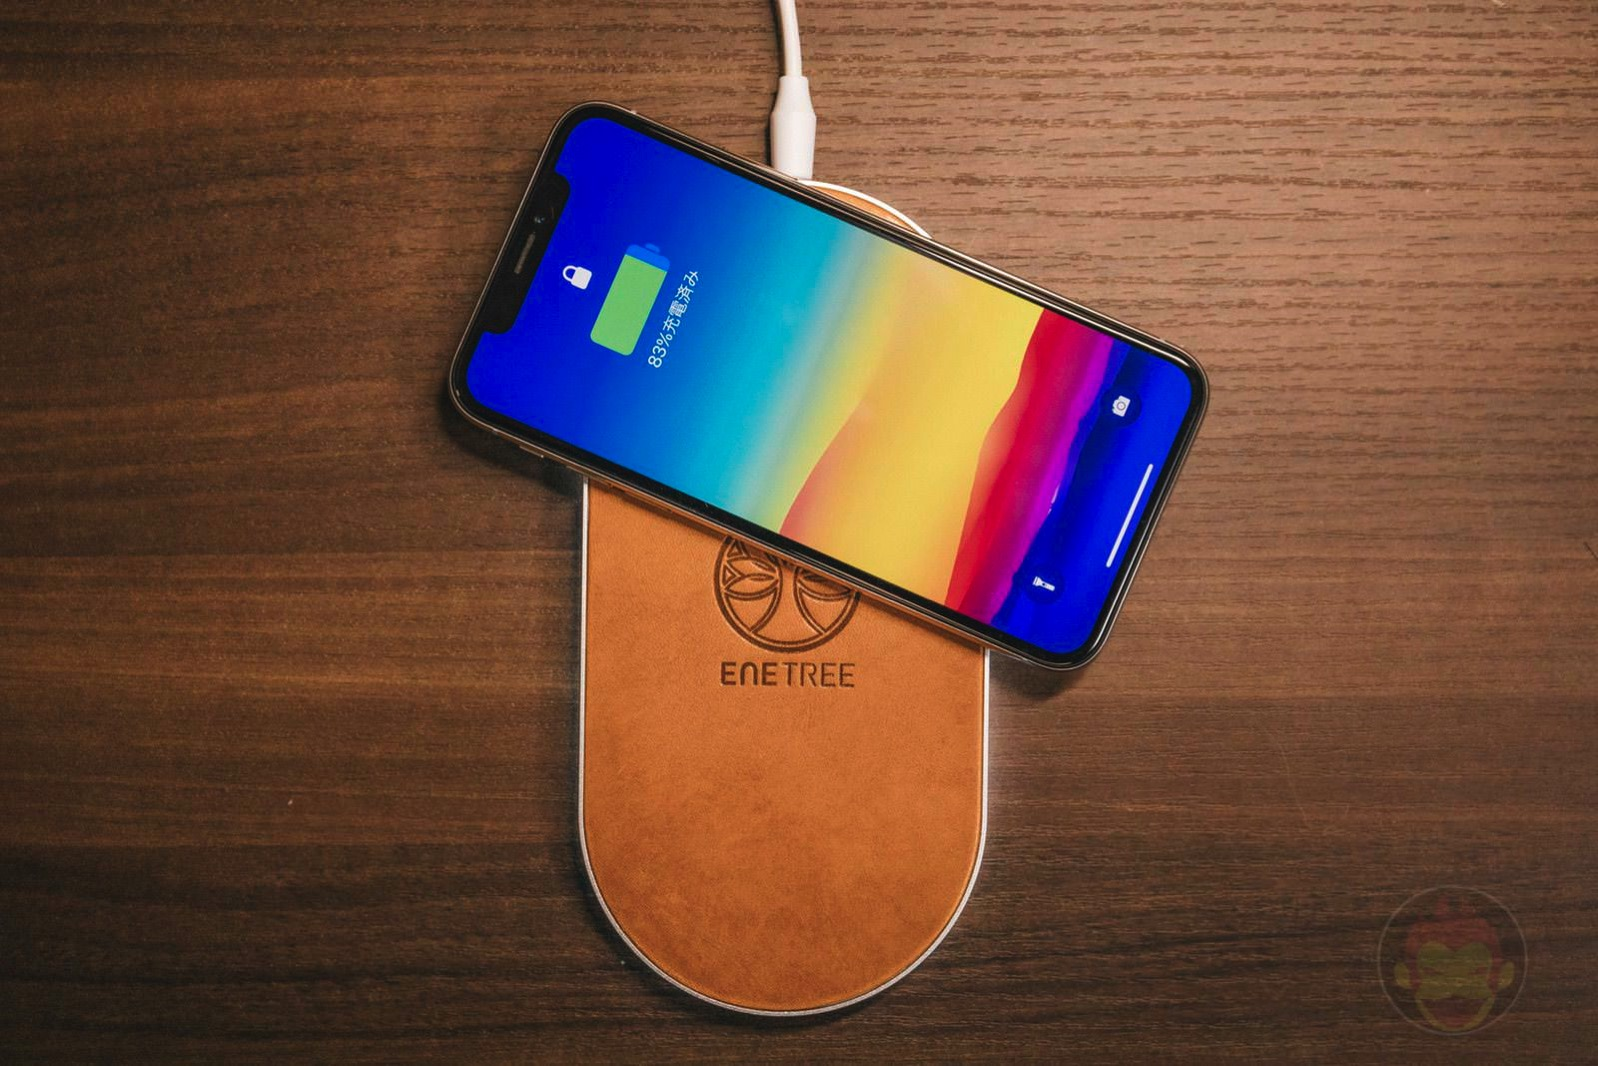 ENETREE Wireless Charger for iPhone 10